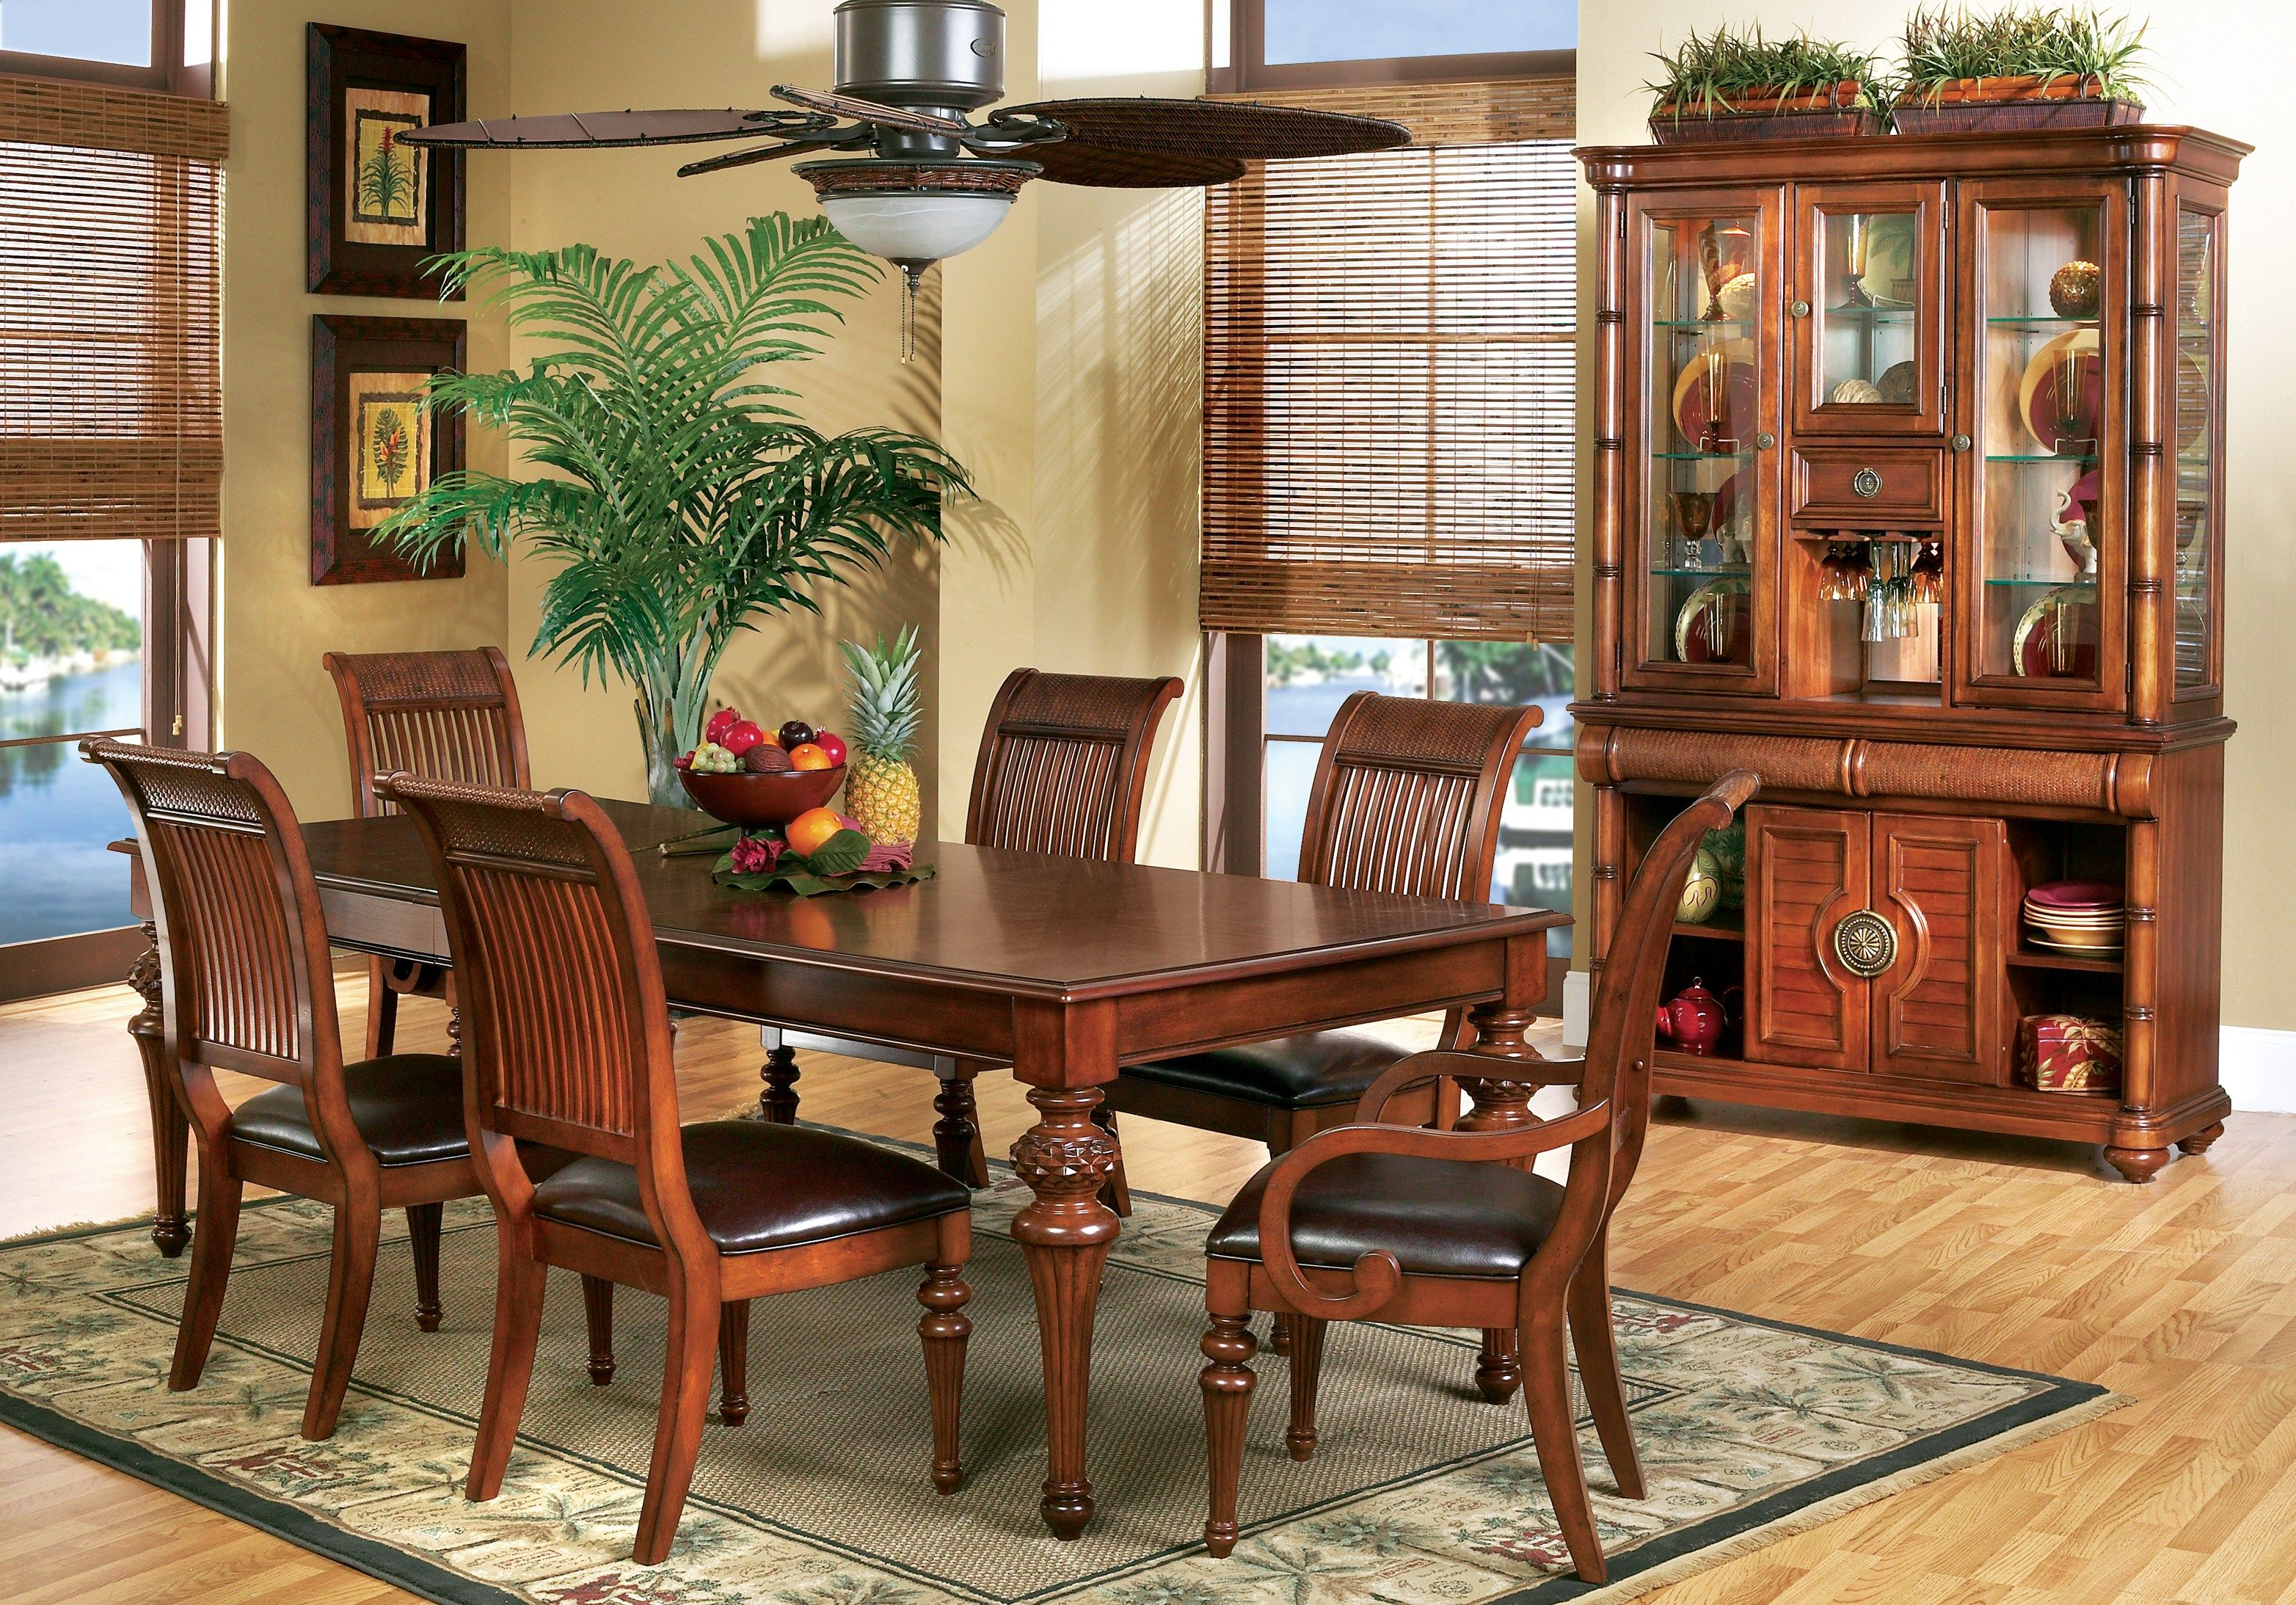 Cindy Crawford Home Key West Tobacco 5 Pc Rectangle Dining Room With Slat Chairs 999 99 5pc Affordable Dining Room Sets Dining Room Sets Cindy Crawford Home